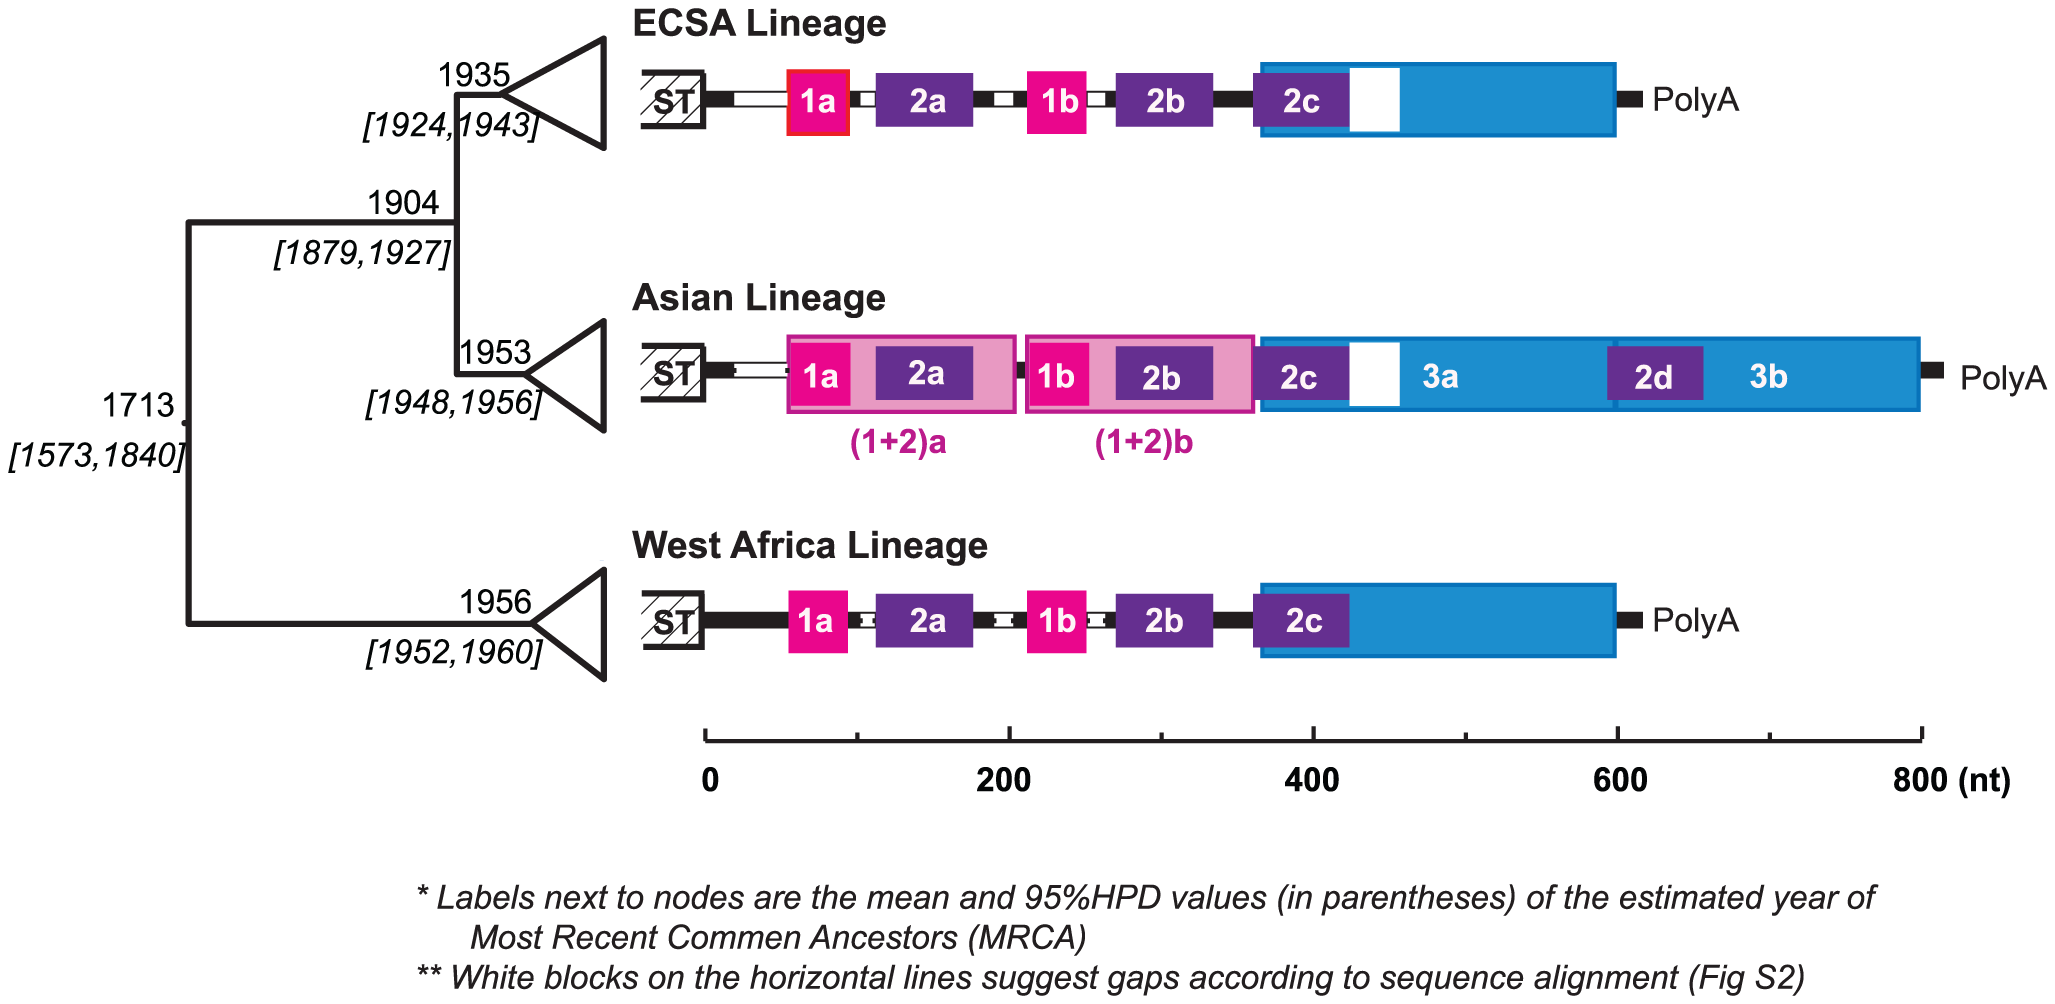 Evolution history and lineage-specific structures of the CHIKV 3′UTR.